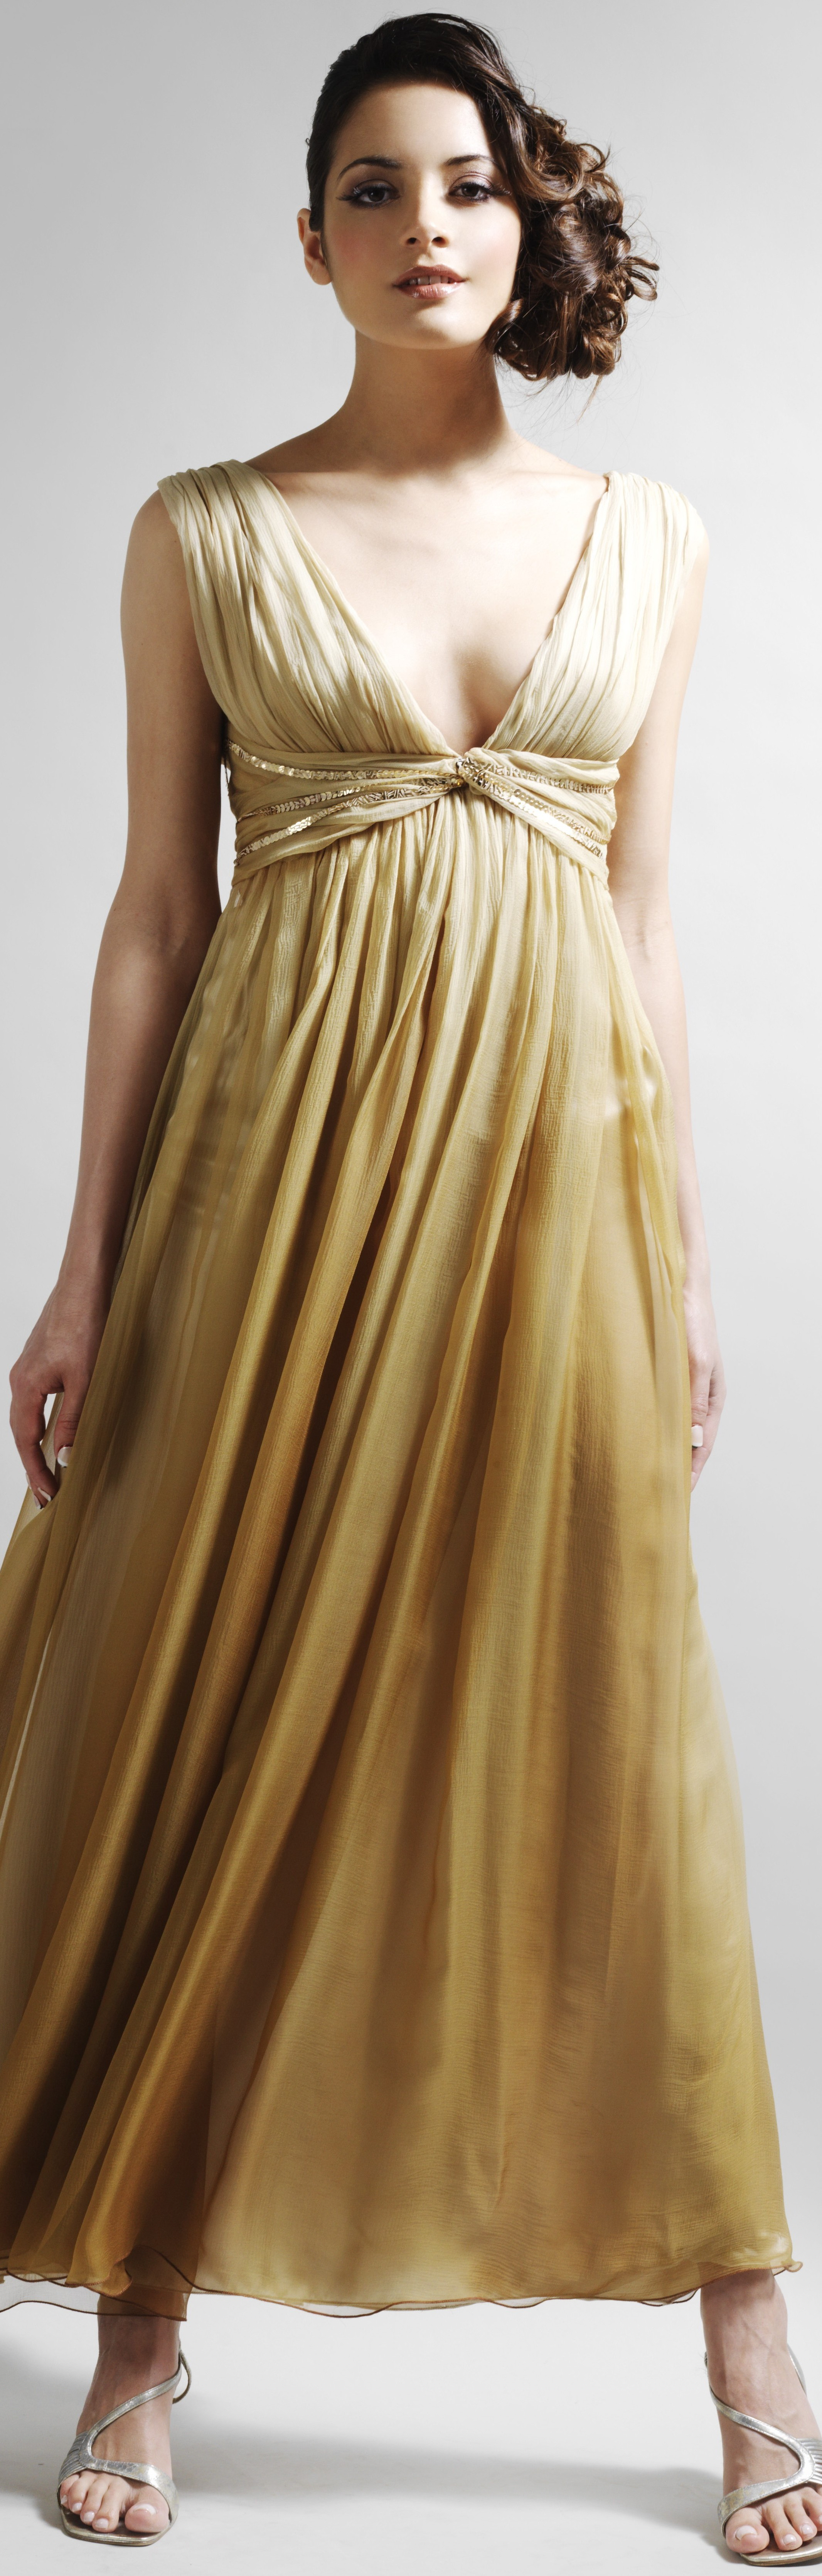 For the woodland faery queen, gold silk couture dress from